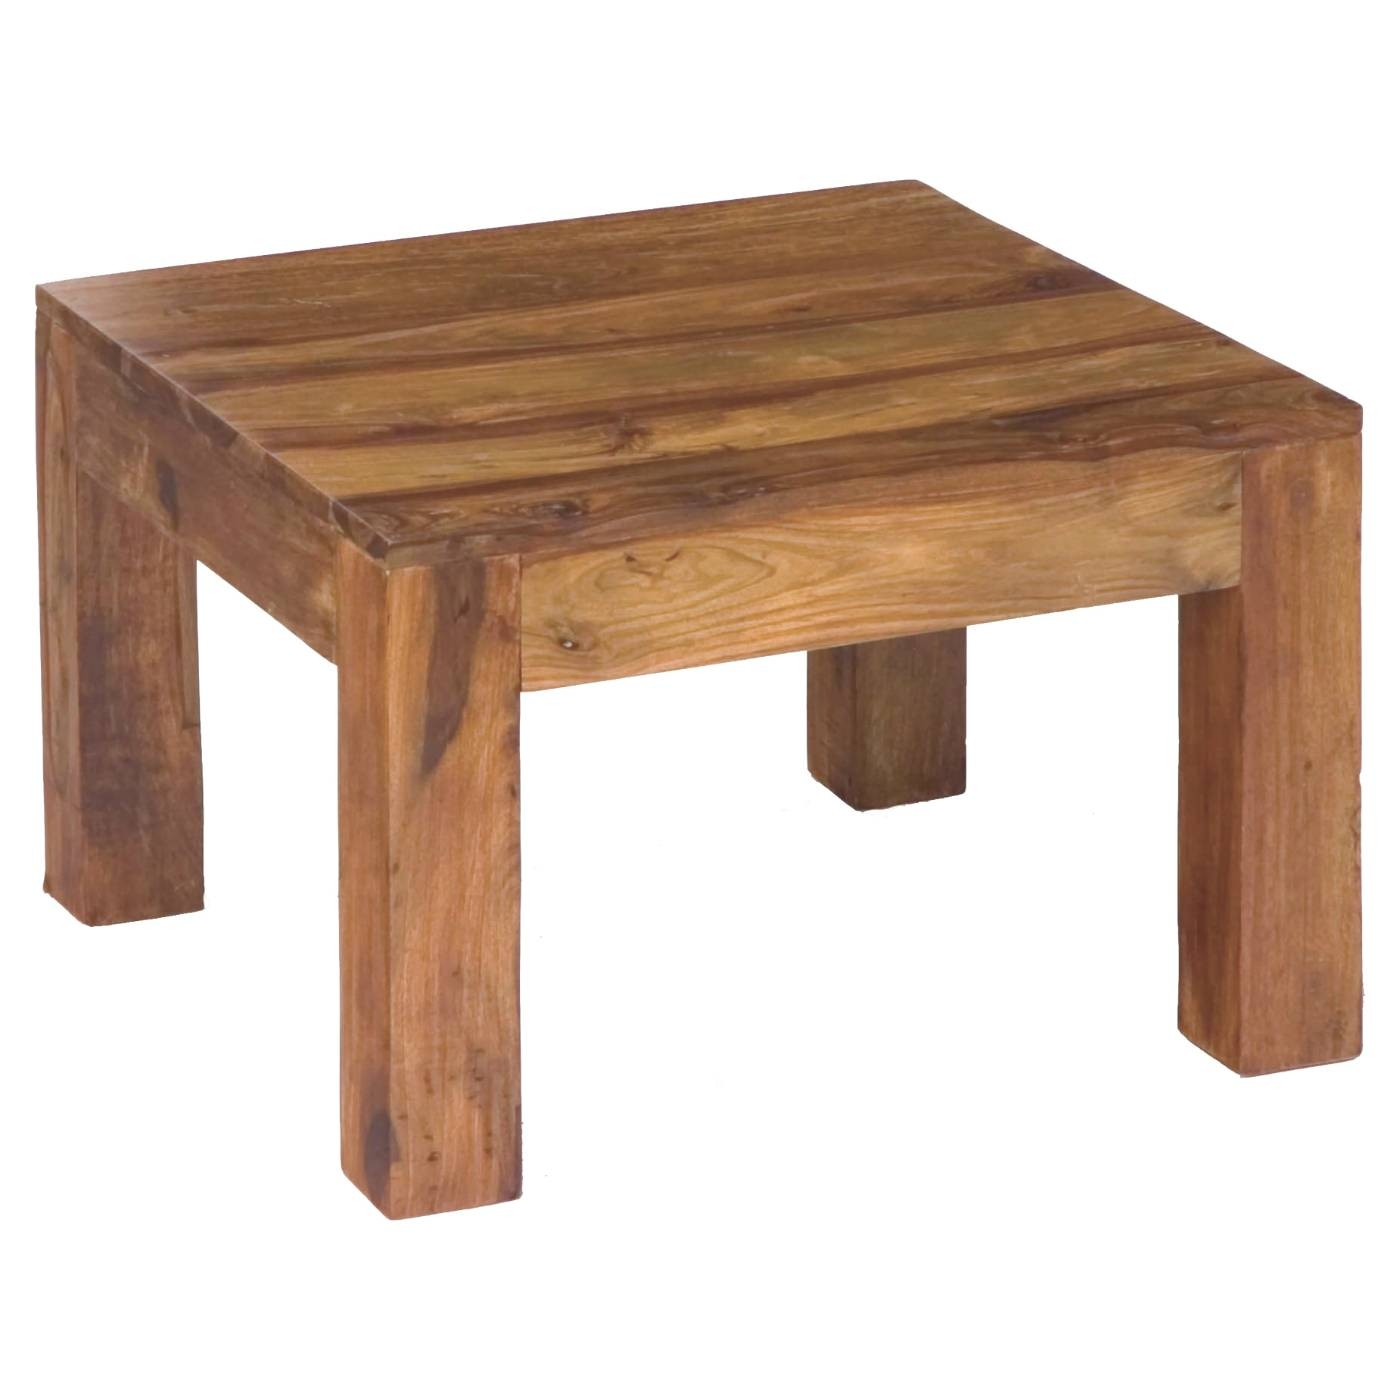 Coffee Table: Chic Small Square Coffee Table Design Ideas Square In Small Wood Coffee Tables (View 2 of 30)